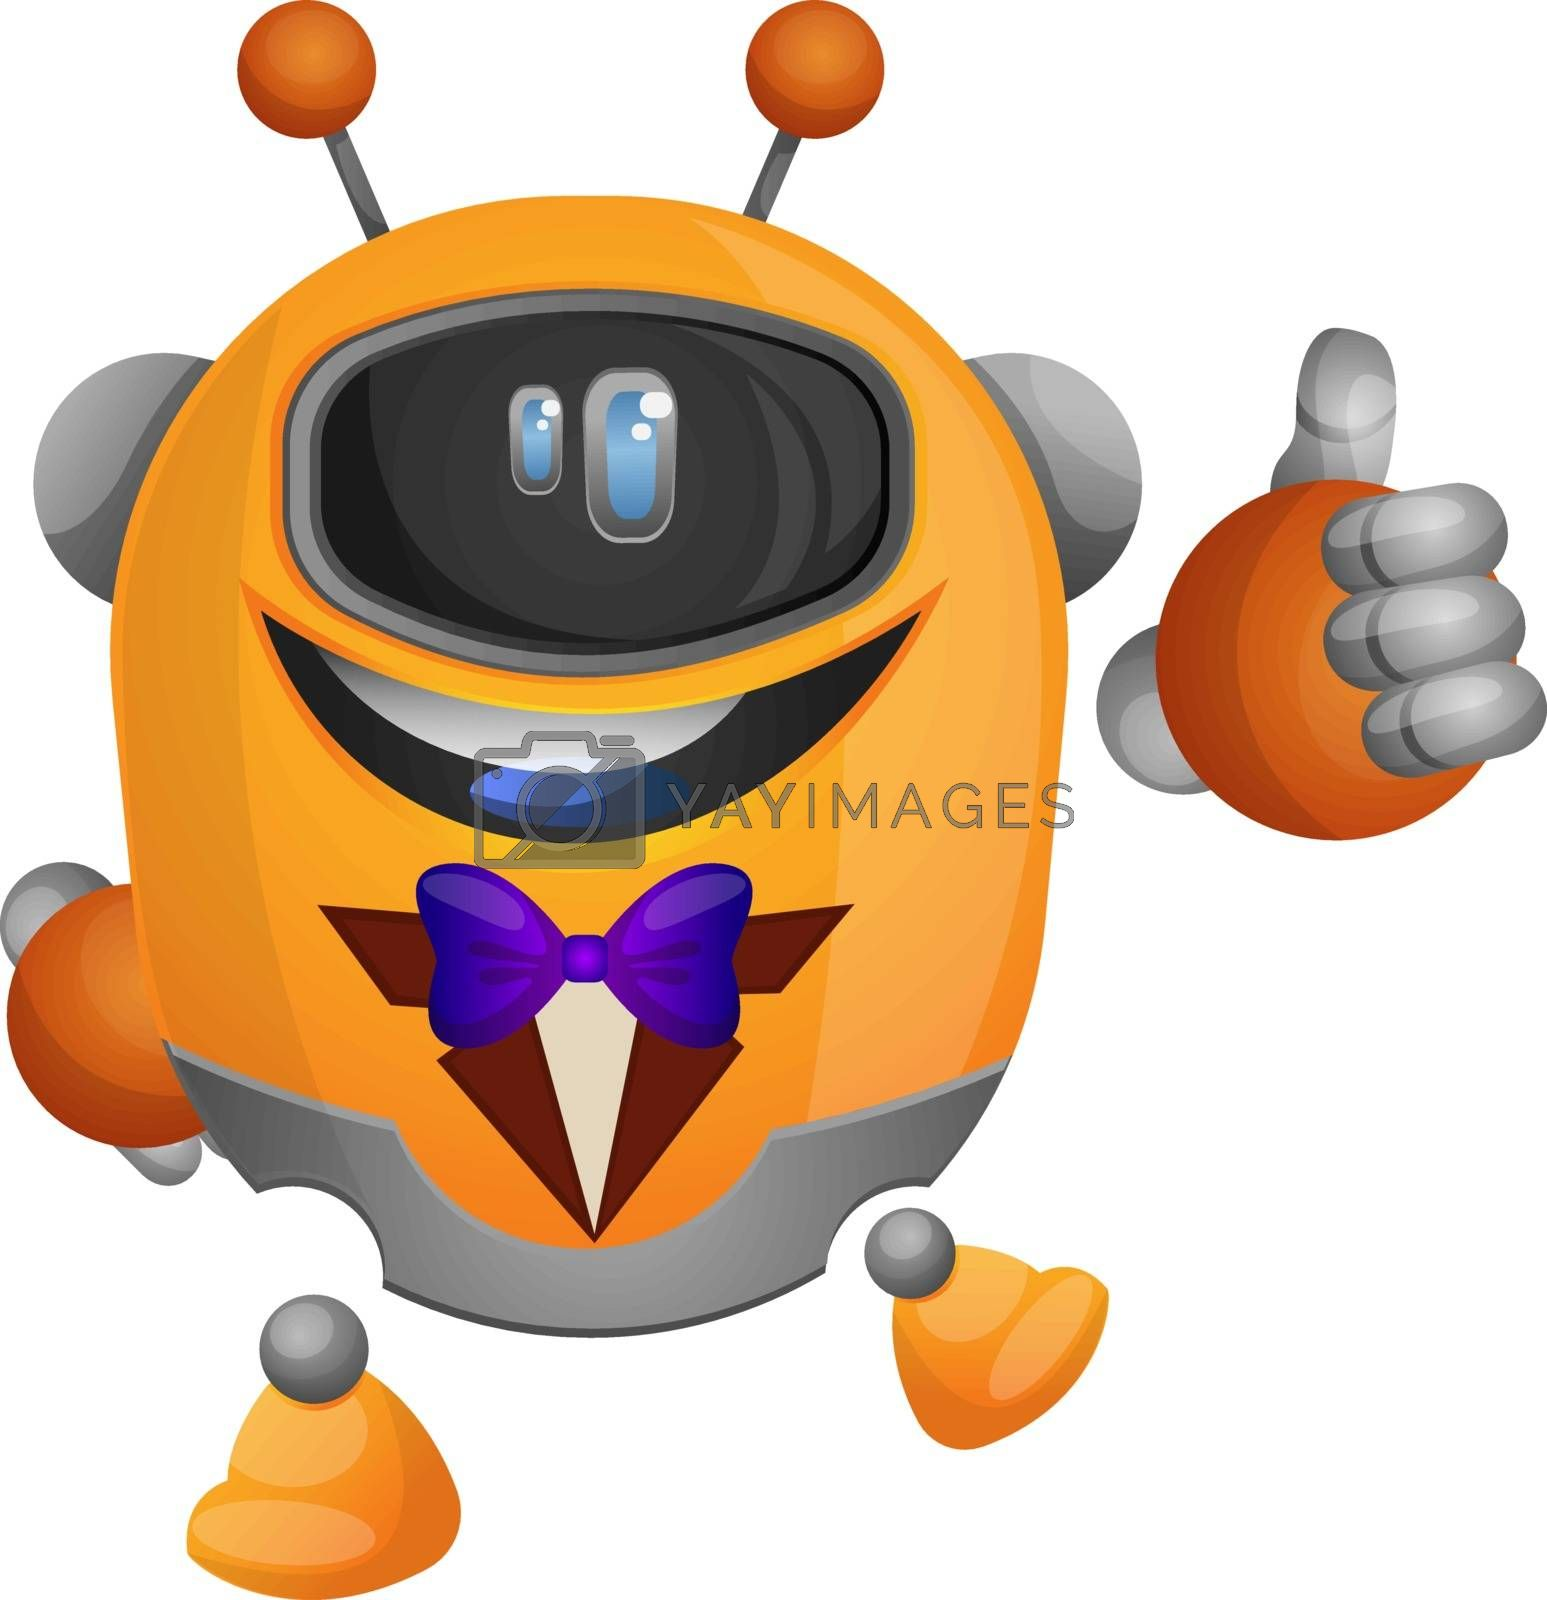 Royalty free image of Orange robot in a tuxedo illustration vector on white background by Morphart